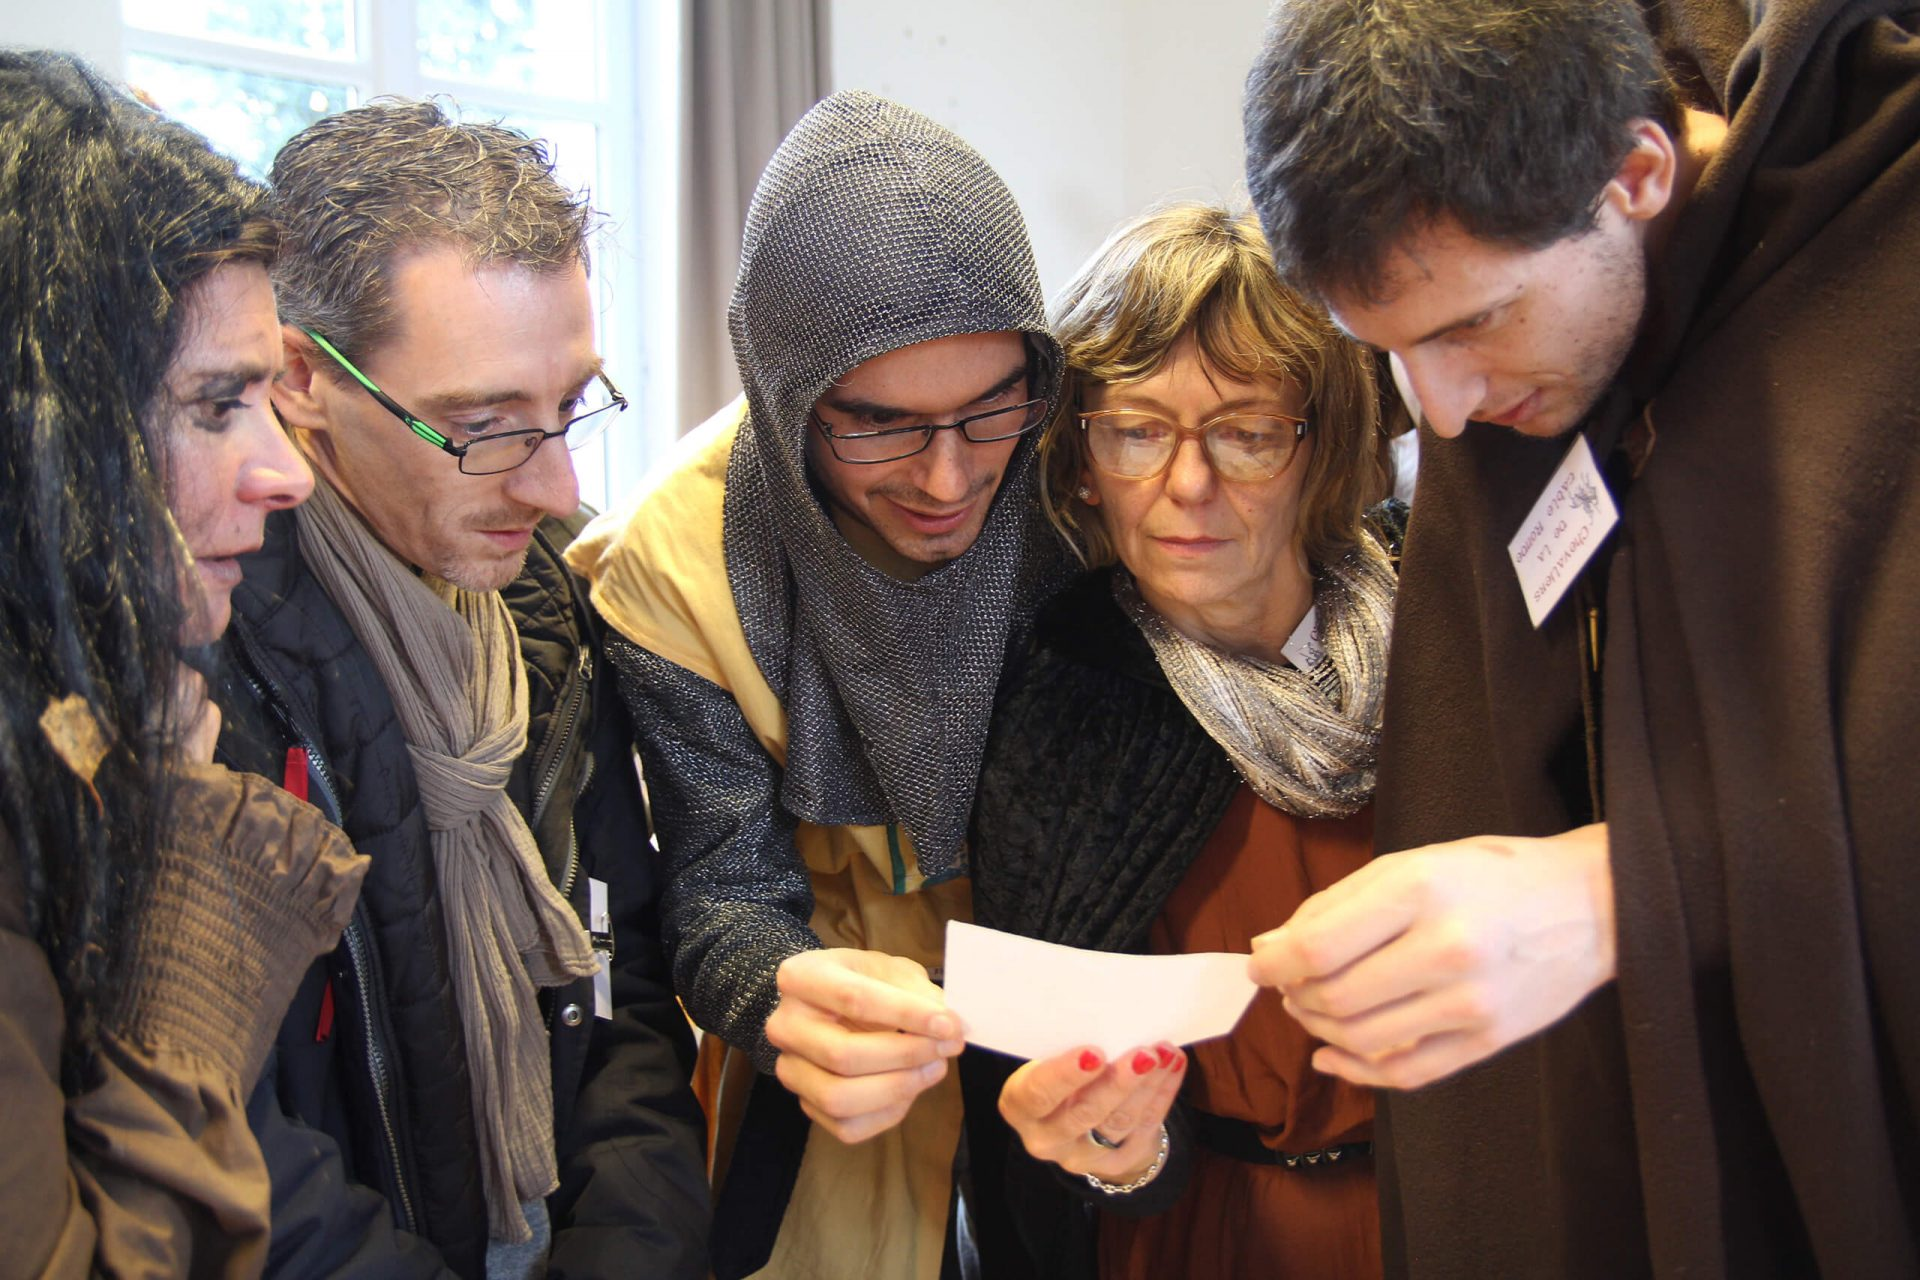 team building challenge - a group in medieval costume crowd together to analyse a clue